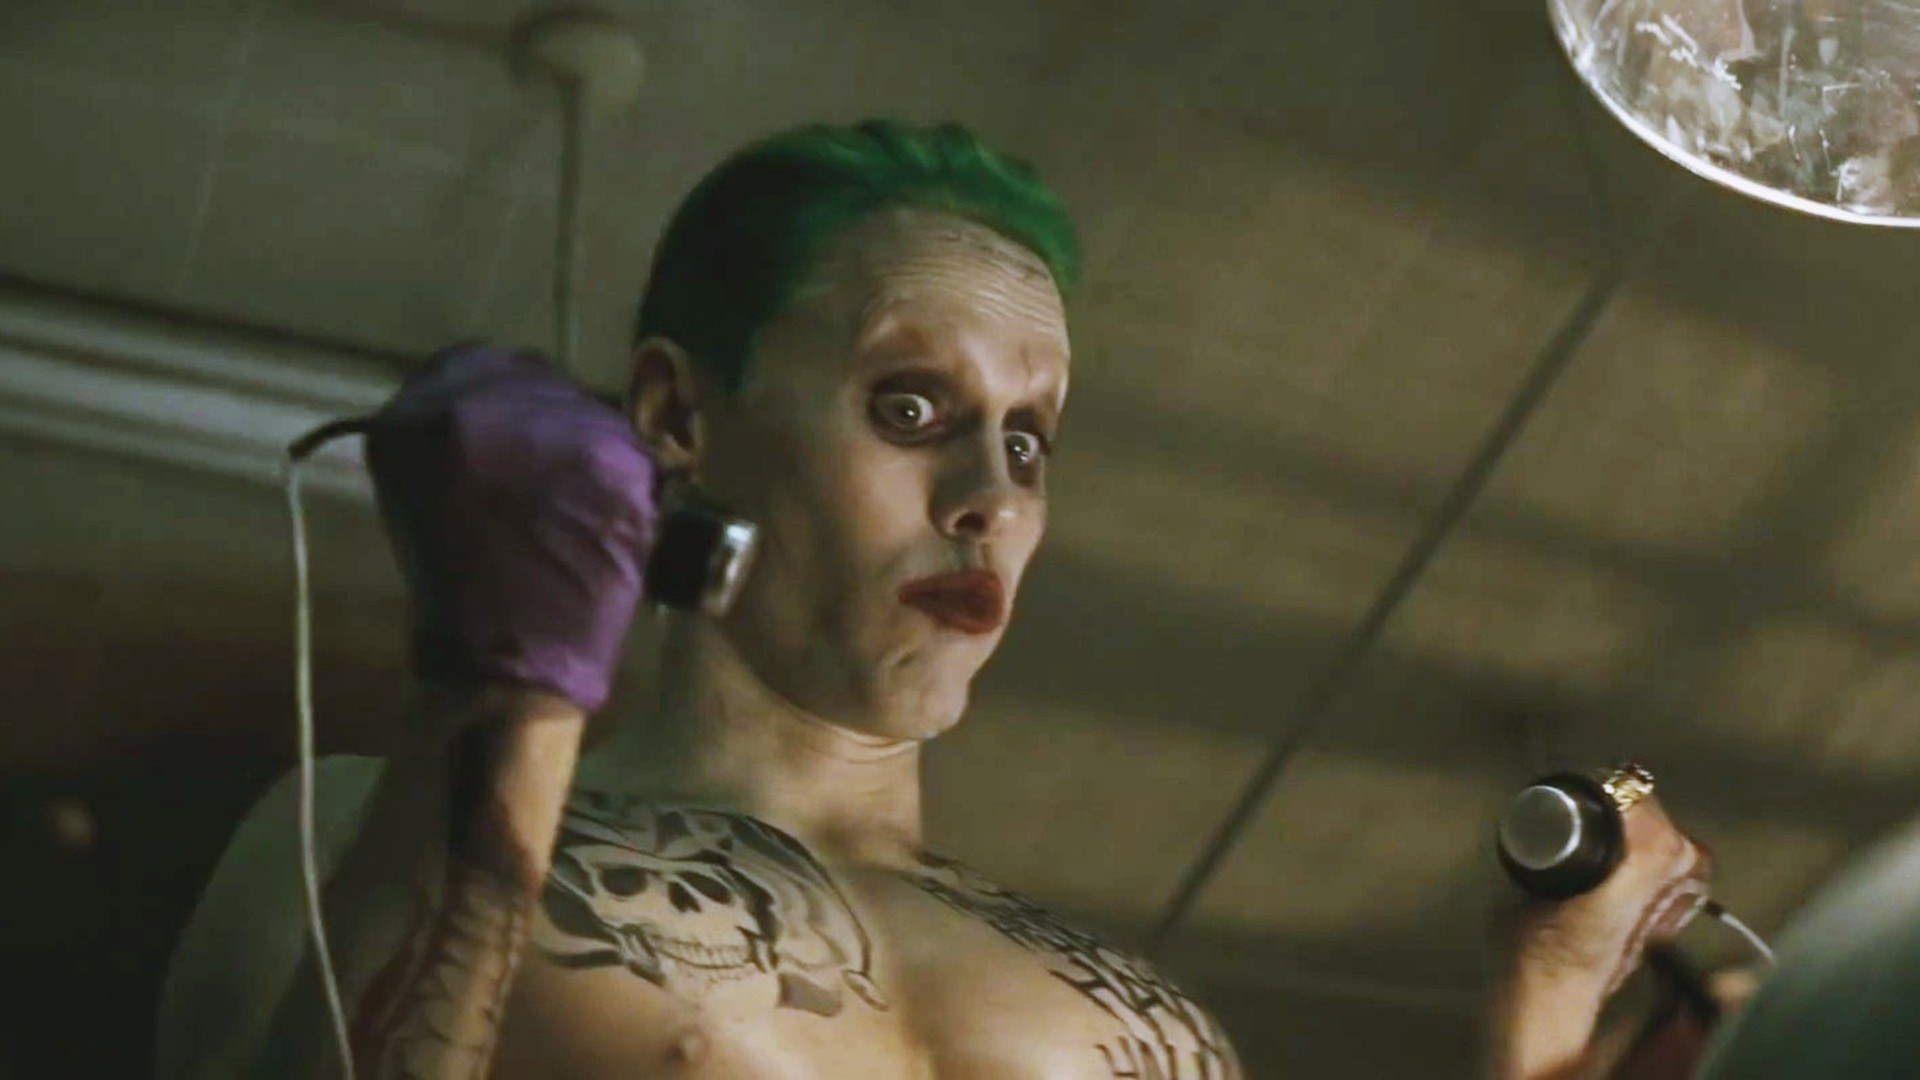 Don't like Suicide Squad? Don't worry, its R-rated edit is now sure to happen